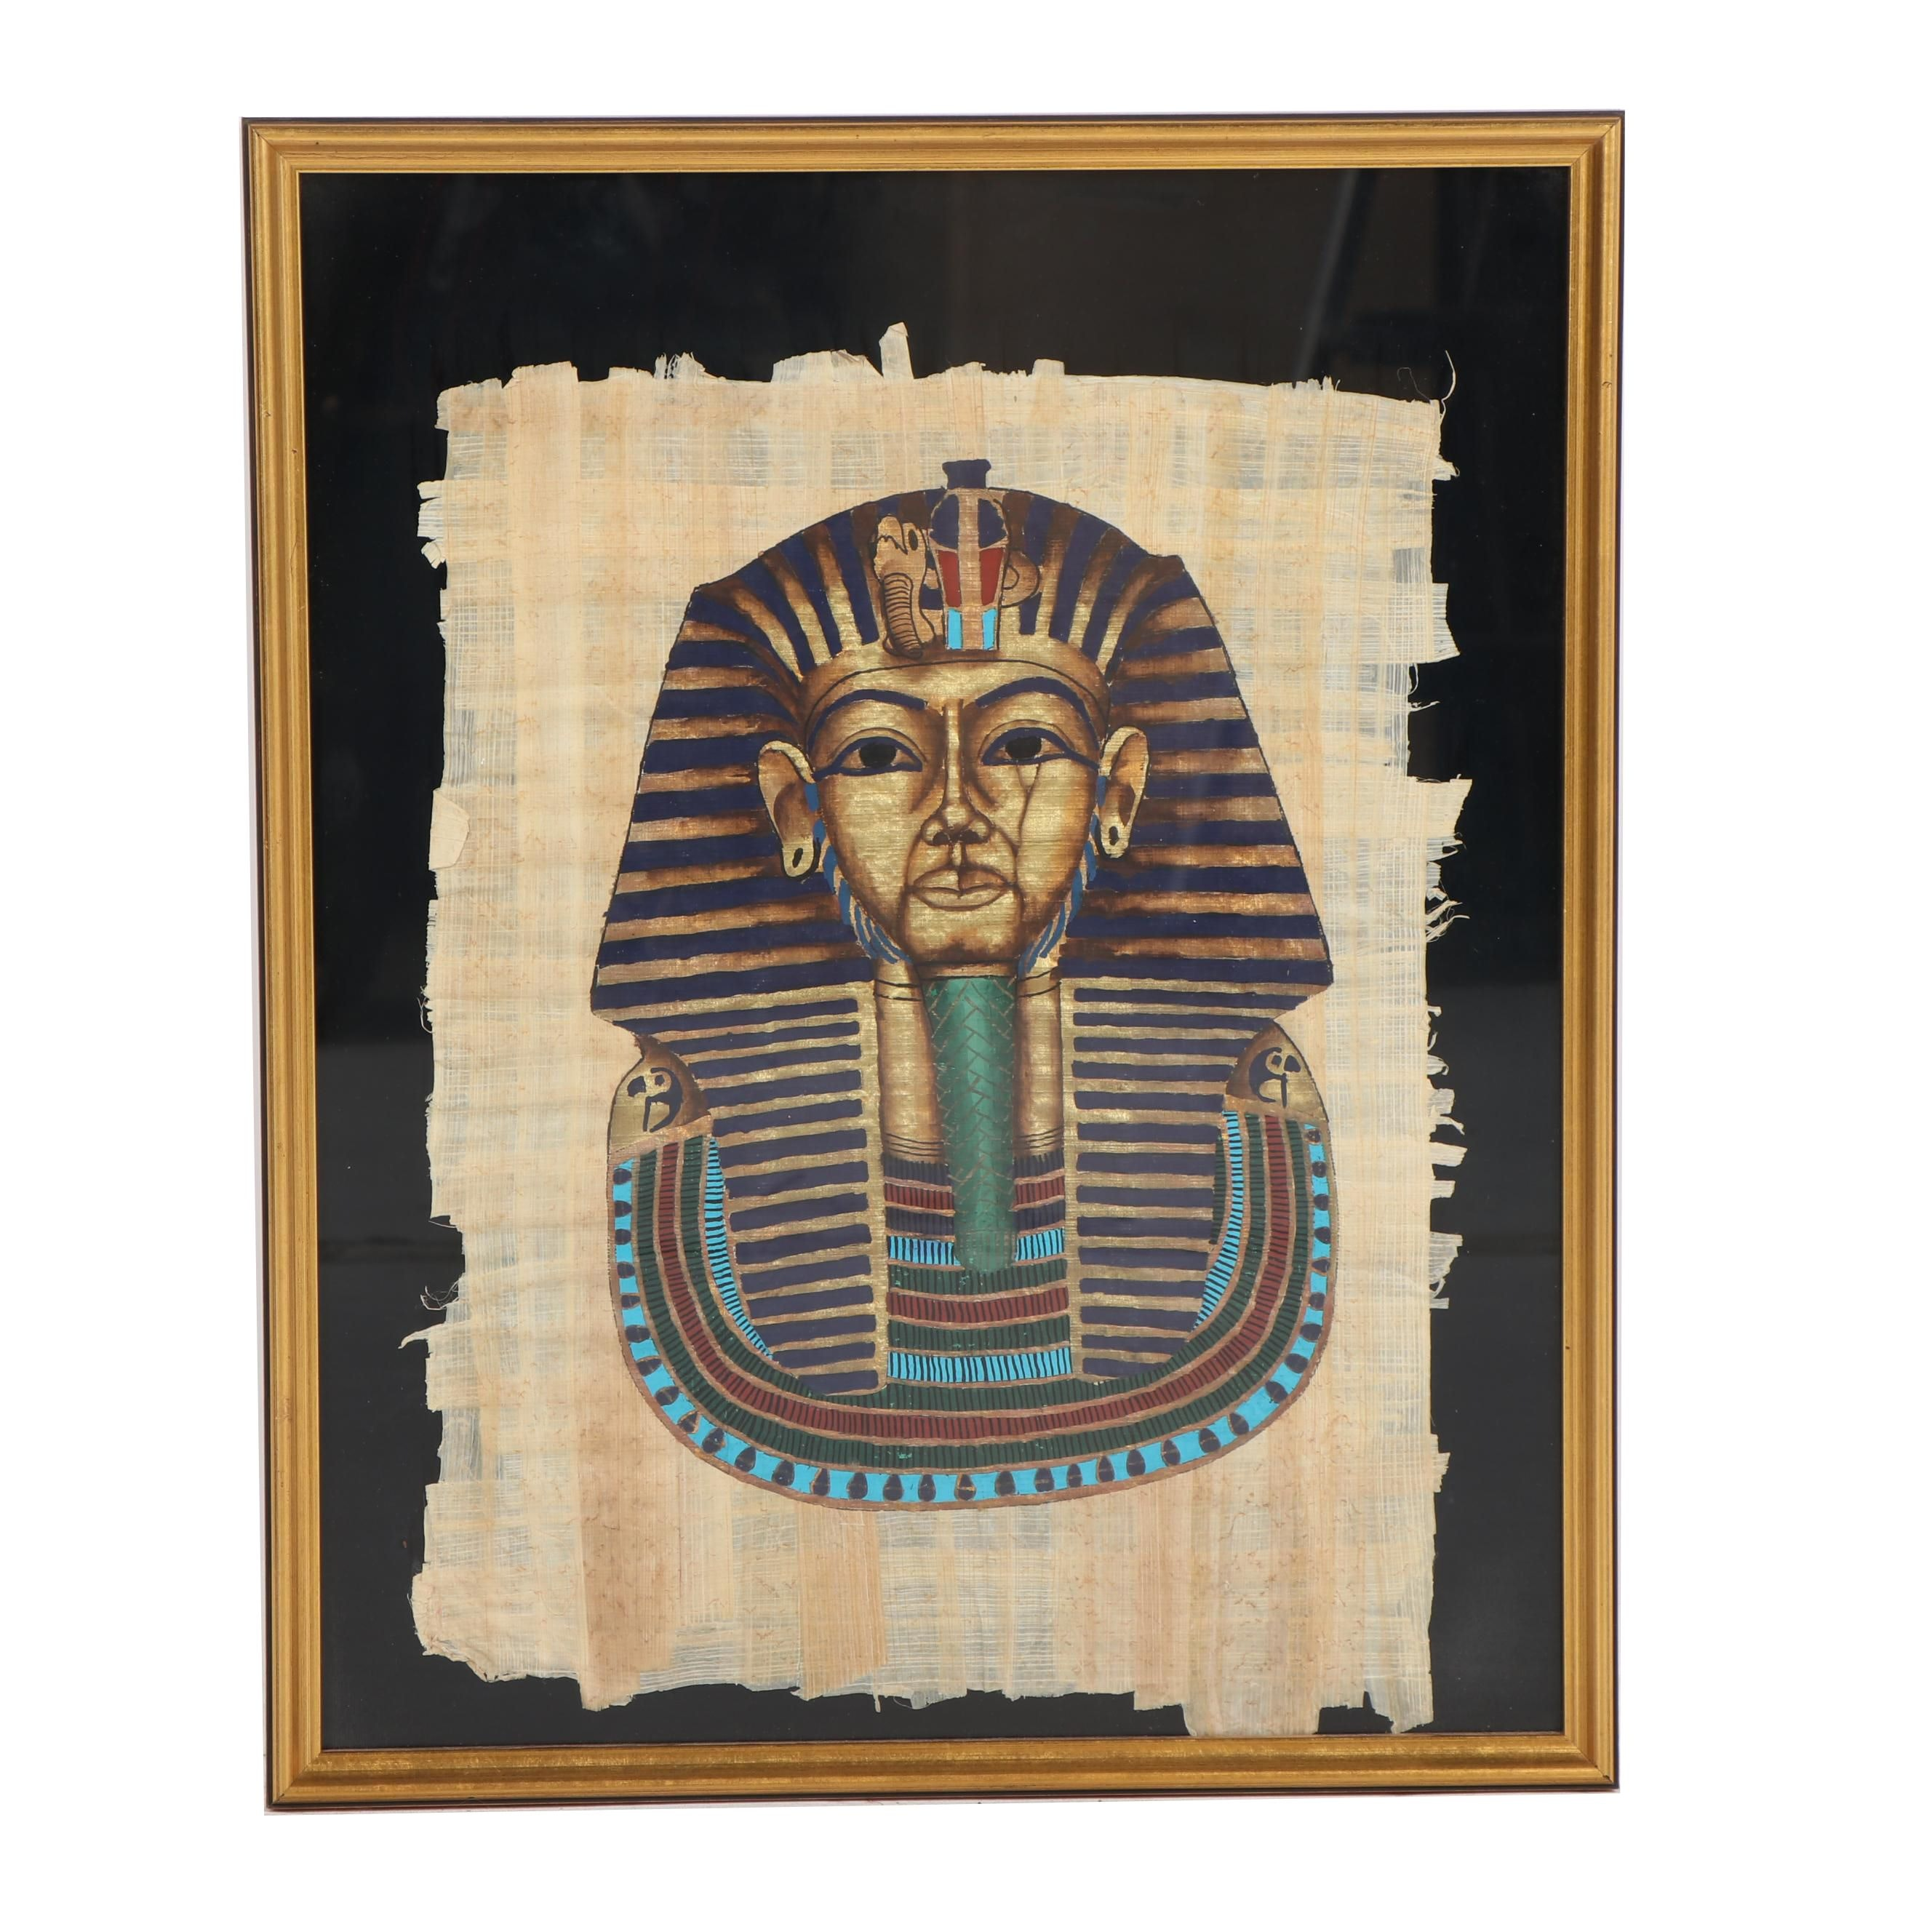 Contemporary Egyptian Style Gouache Painting of King Tut